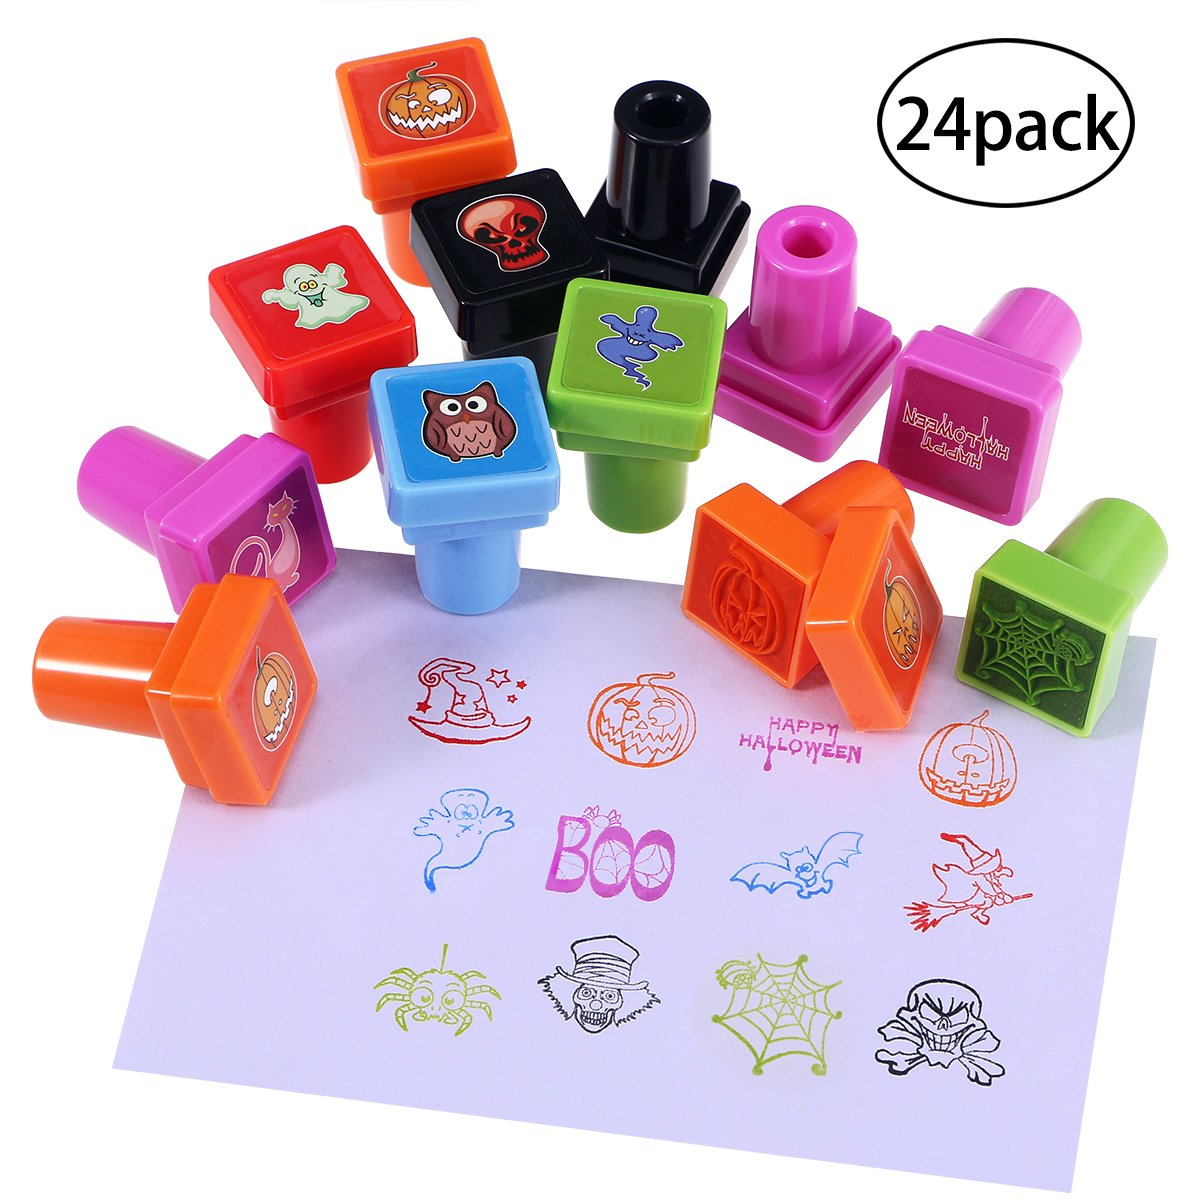 Pixnor Halloween Assorted Stamps 24Pack for Kids Self-Ink Stamps for Holiday Party Favors, 24 Different Designs, 6 Assorted Colors BESTOMZ